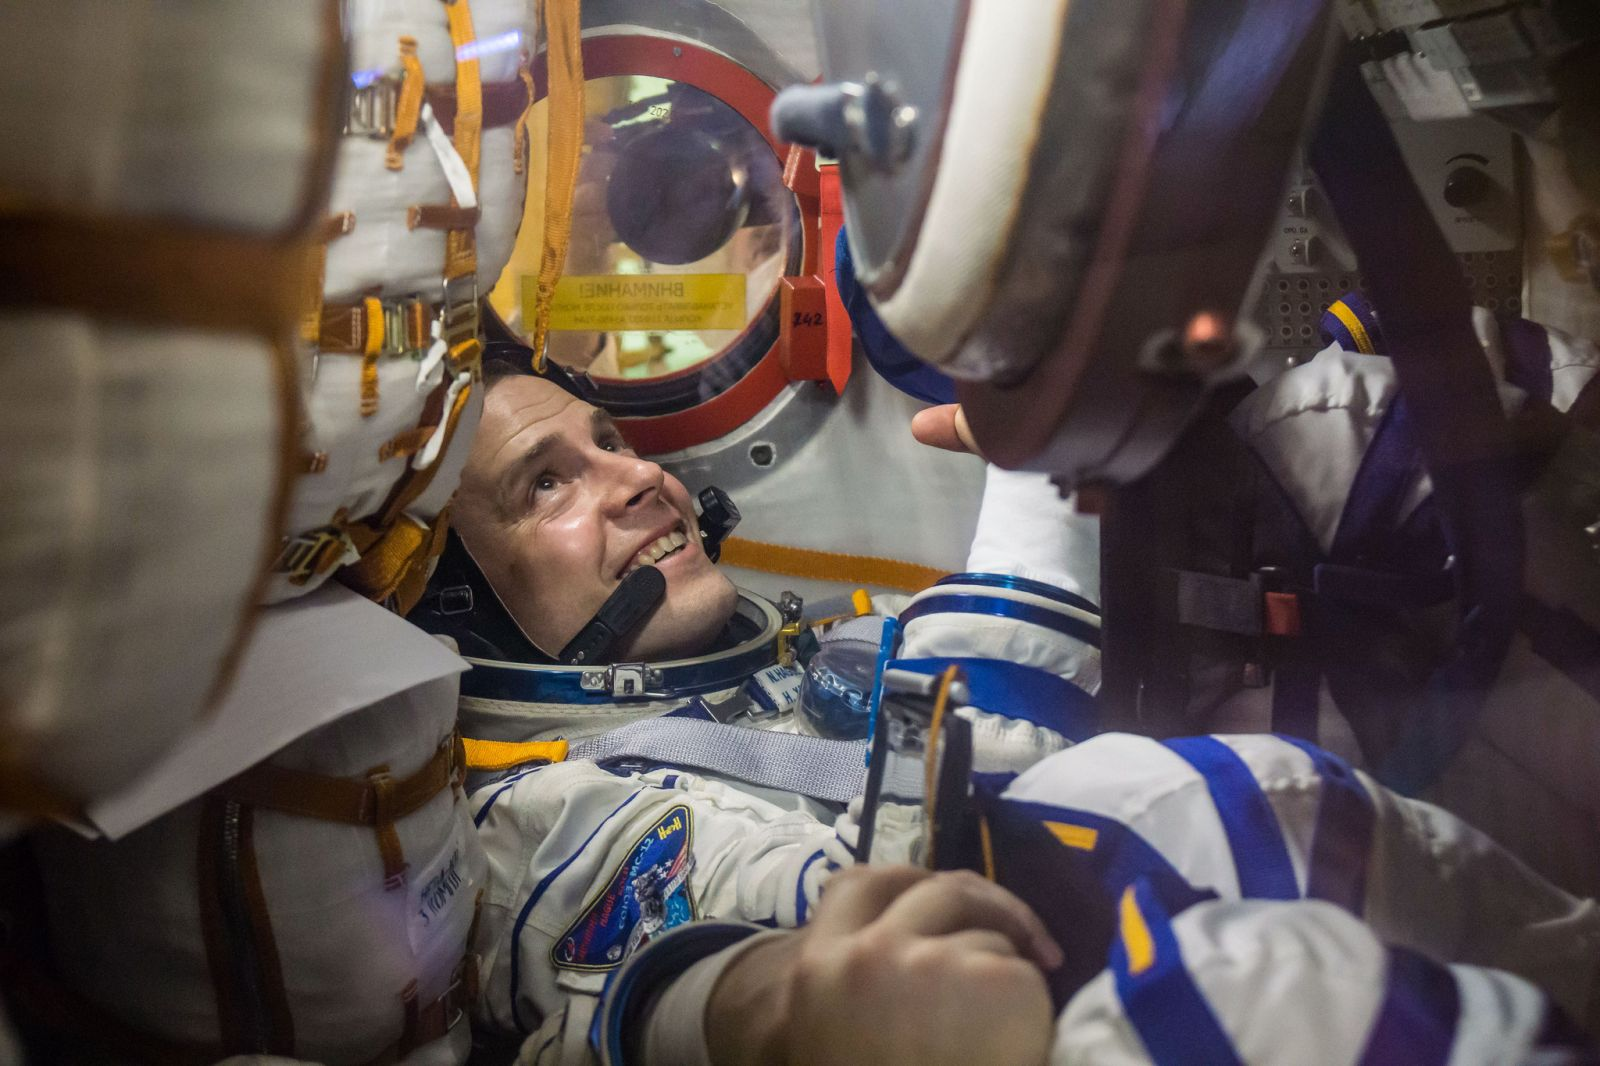 Nick Hague works inside Soyuz MS-12 during pre-launch training on Feb. 27, 2019. Photo Credit: Victor Zelentsov / NASA